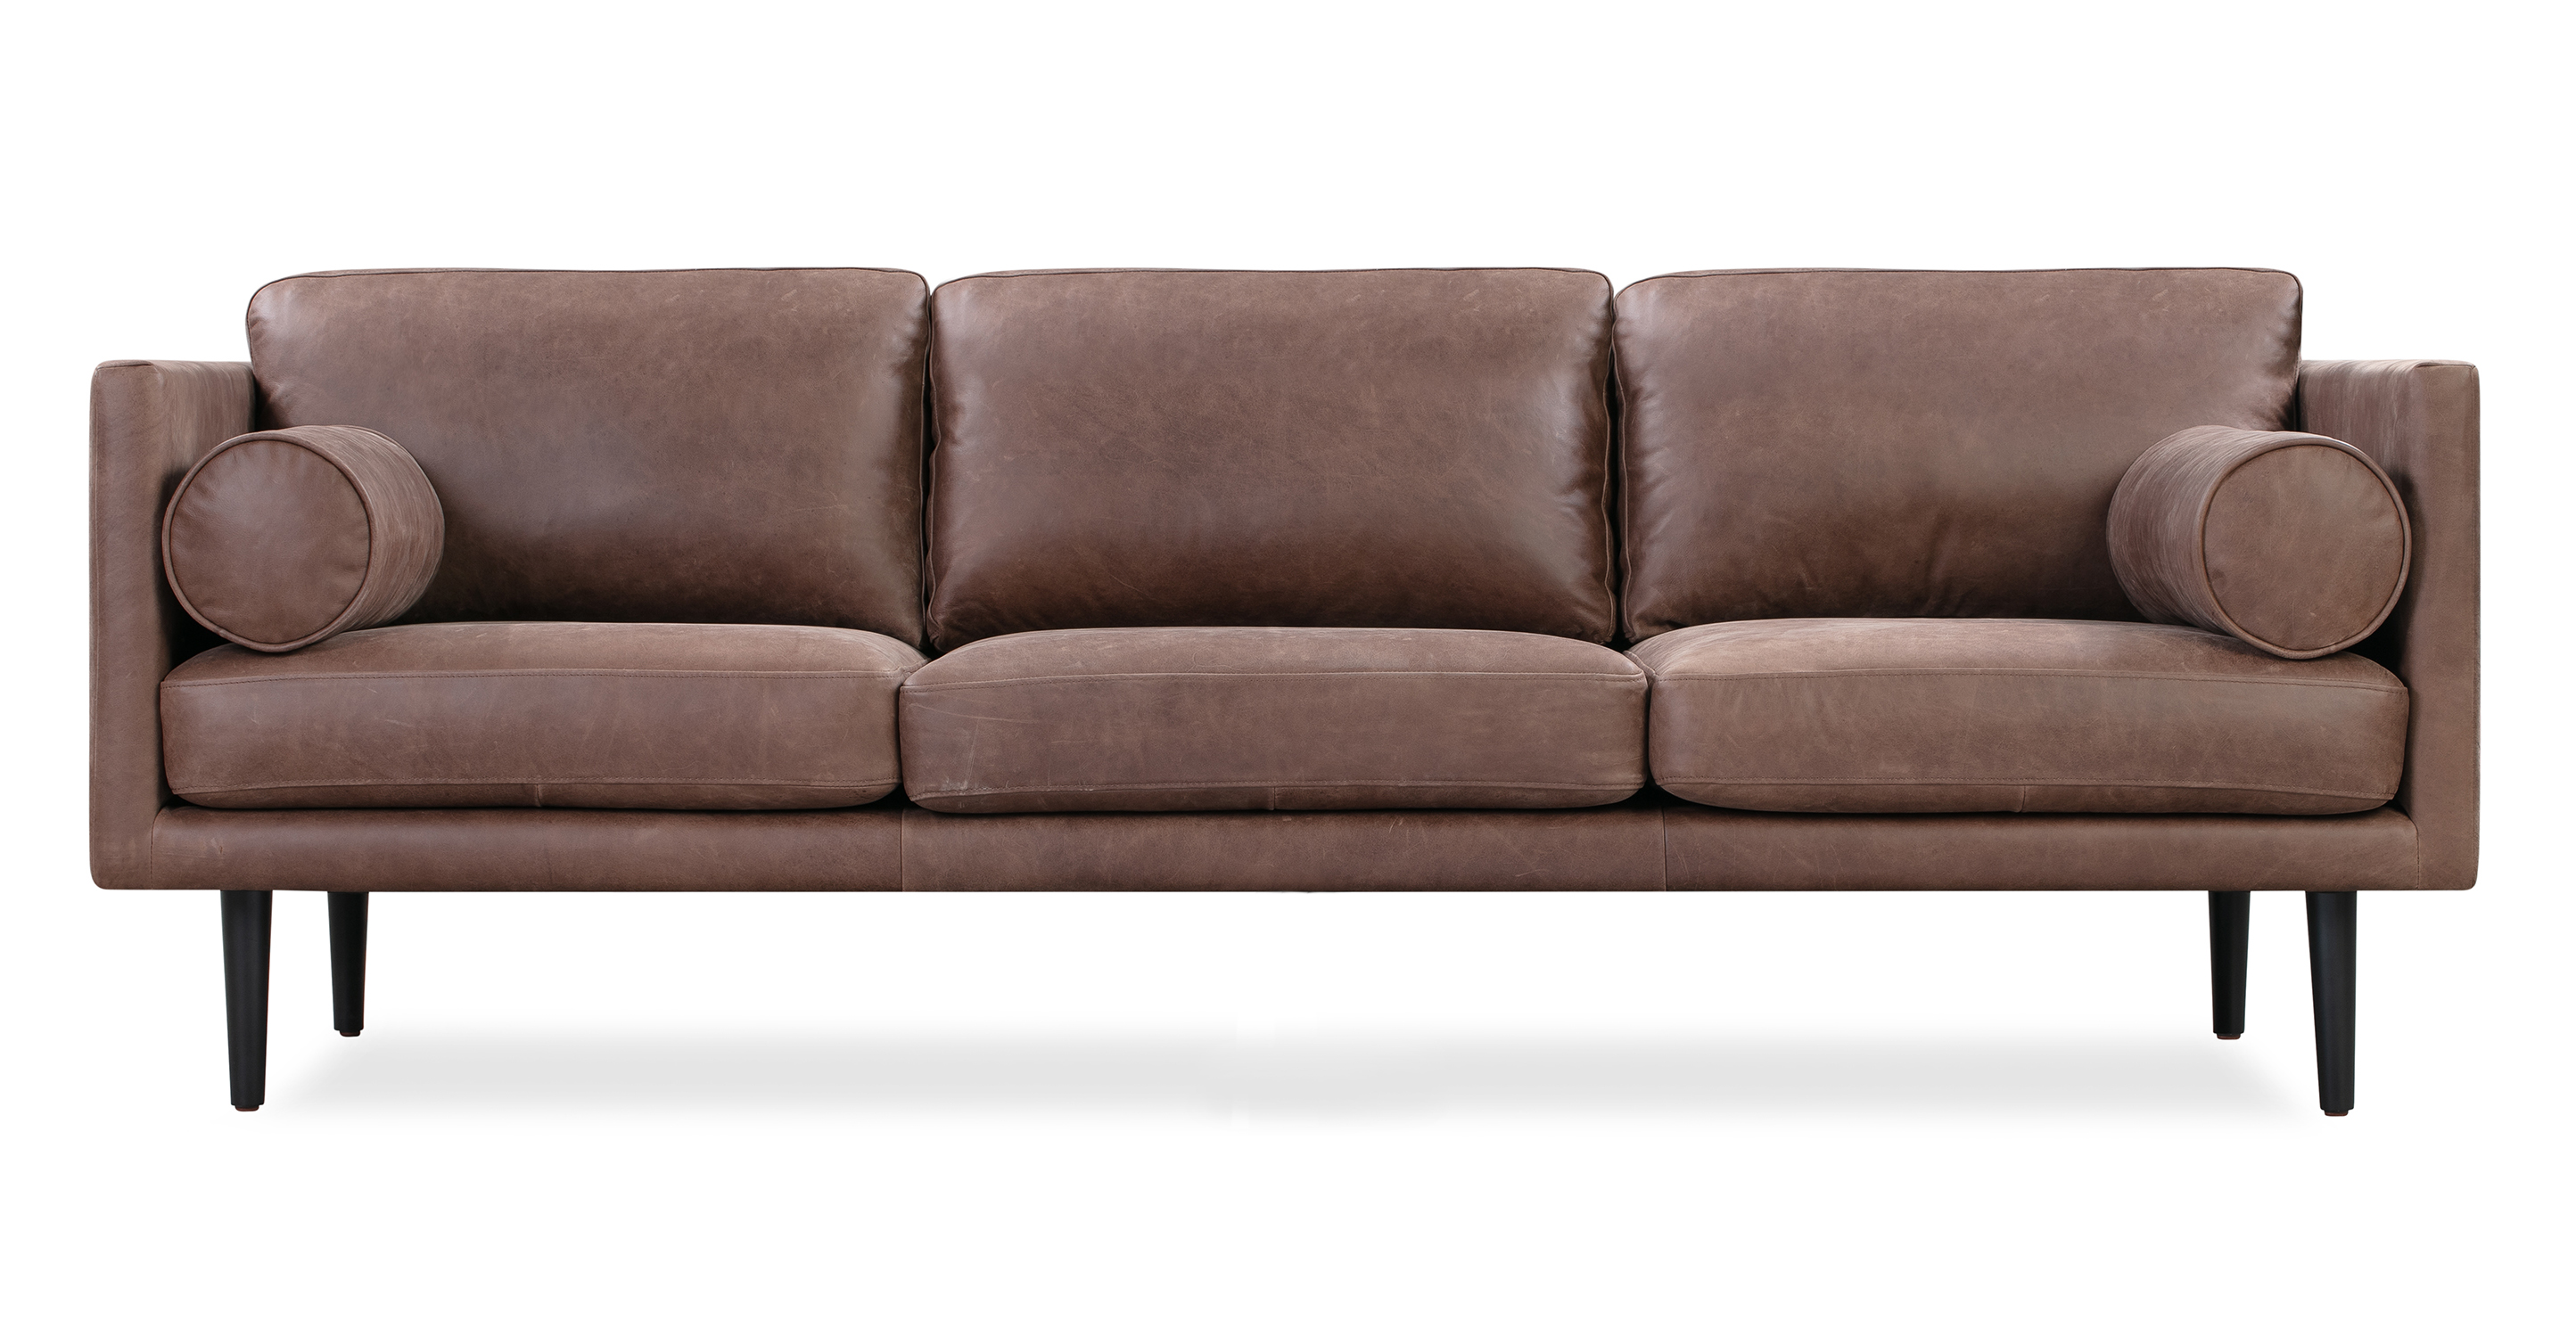 "Spectre 81"" Leather Sofa, Milano Mocha"